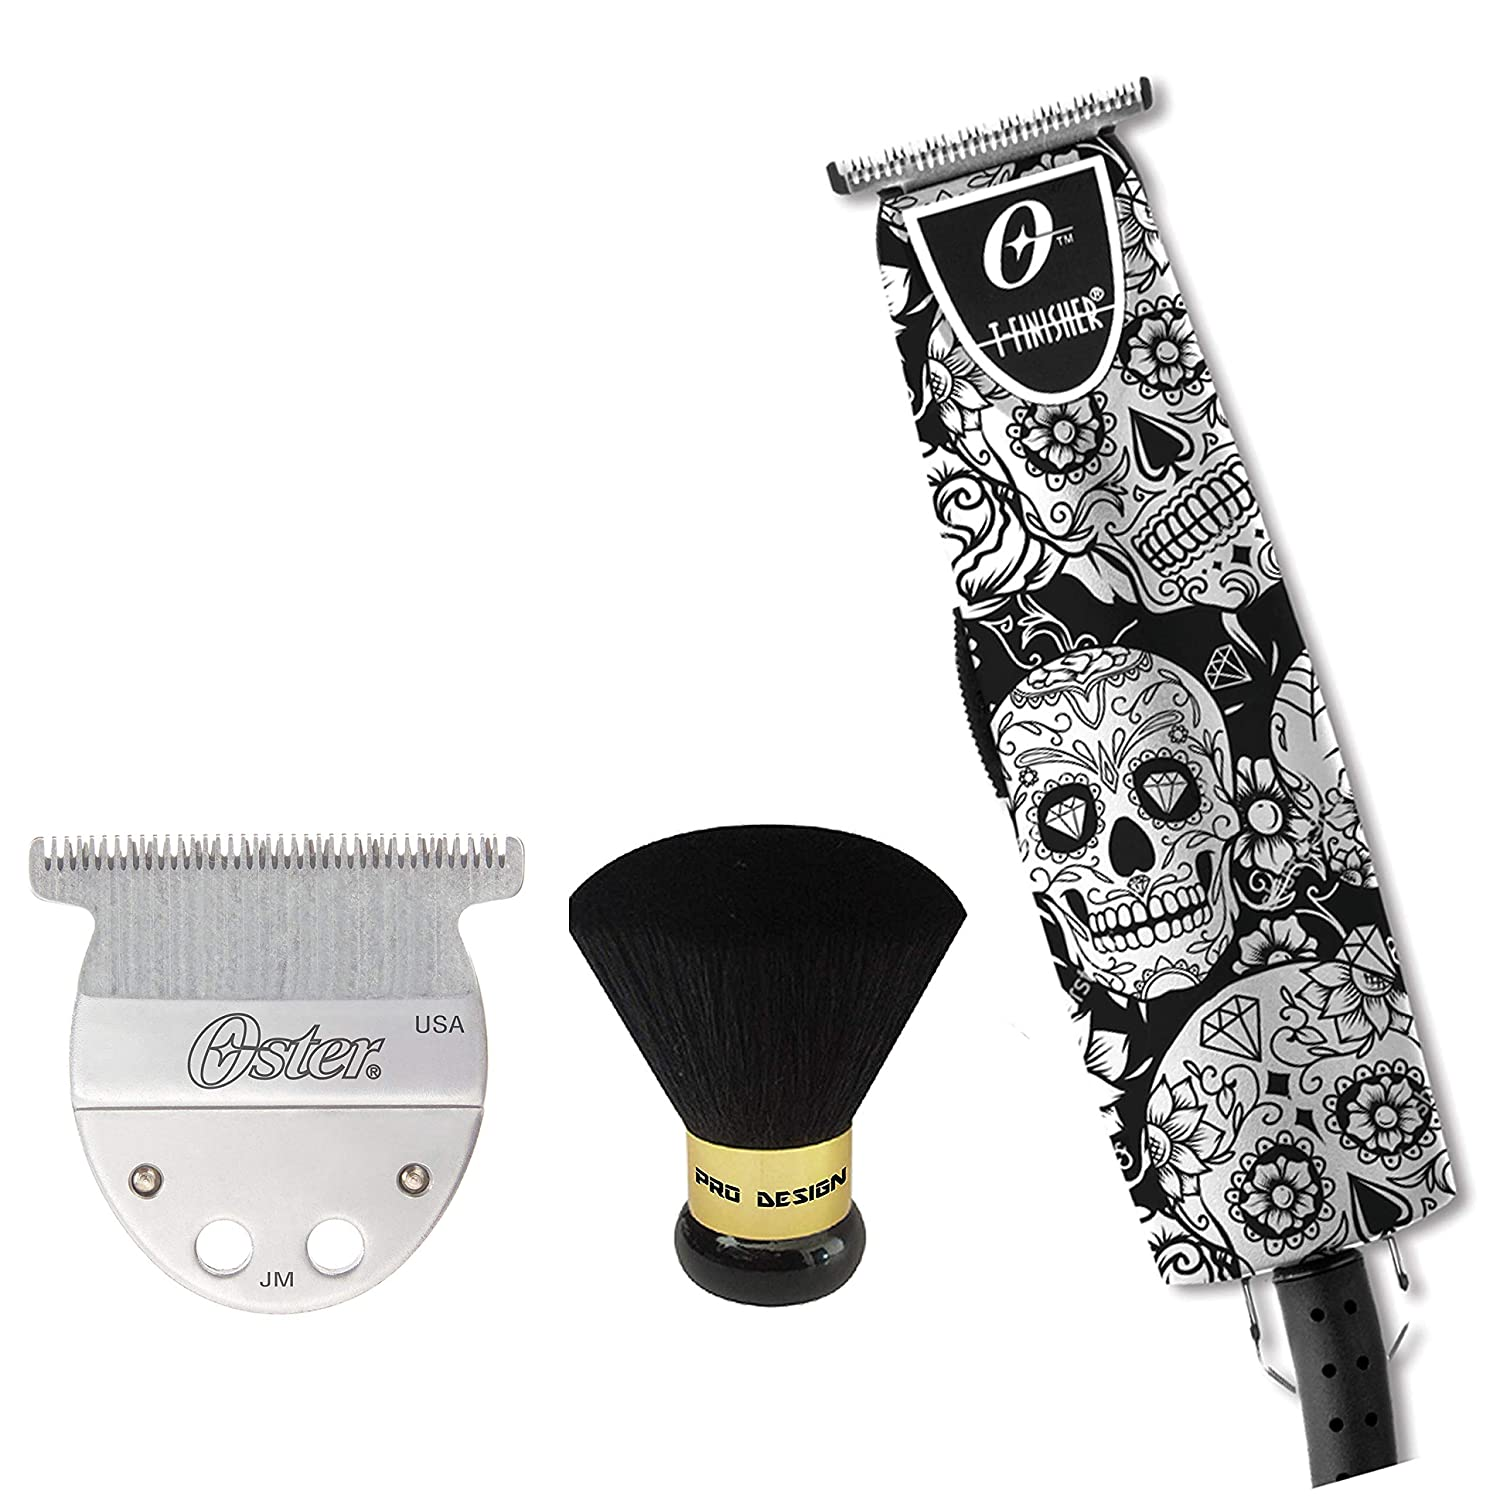 Oster Ac T-finisher Trimmer Skulls Limited Edition with Bonus Neck Duster